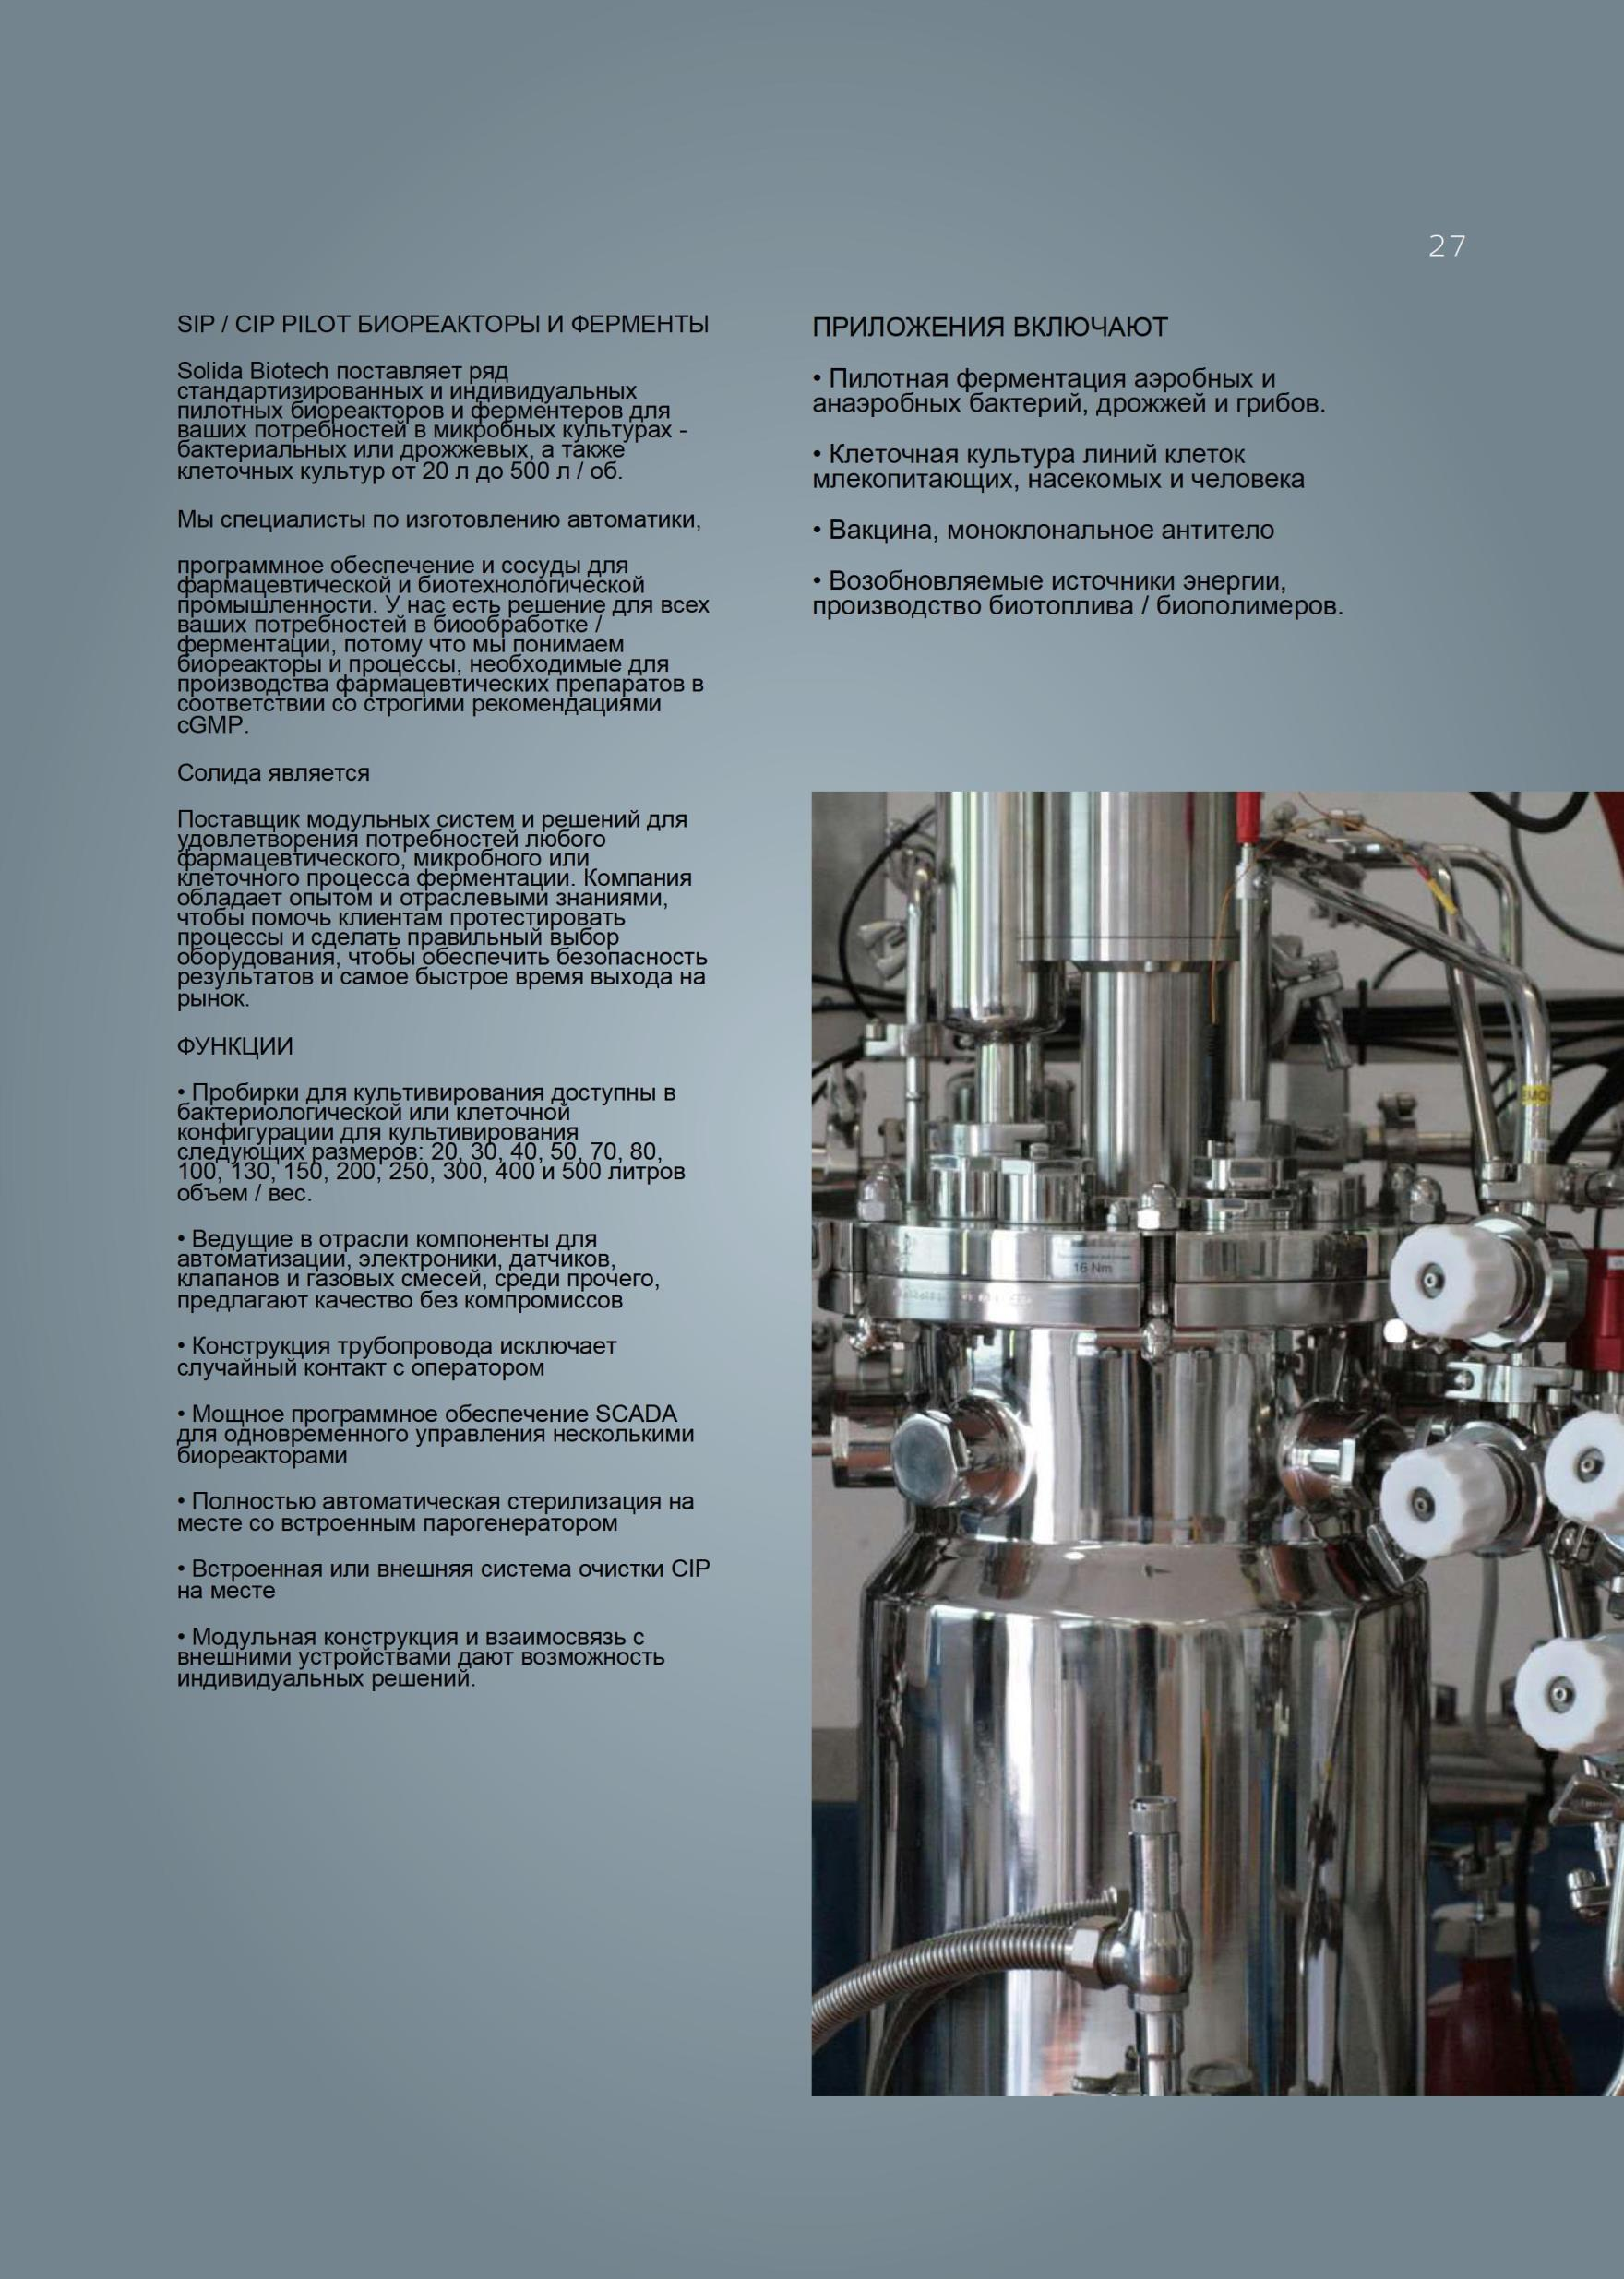 General Catalogue Solida Biotech GmBH2_compressed (2 - 0015